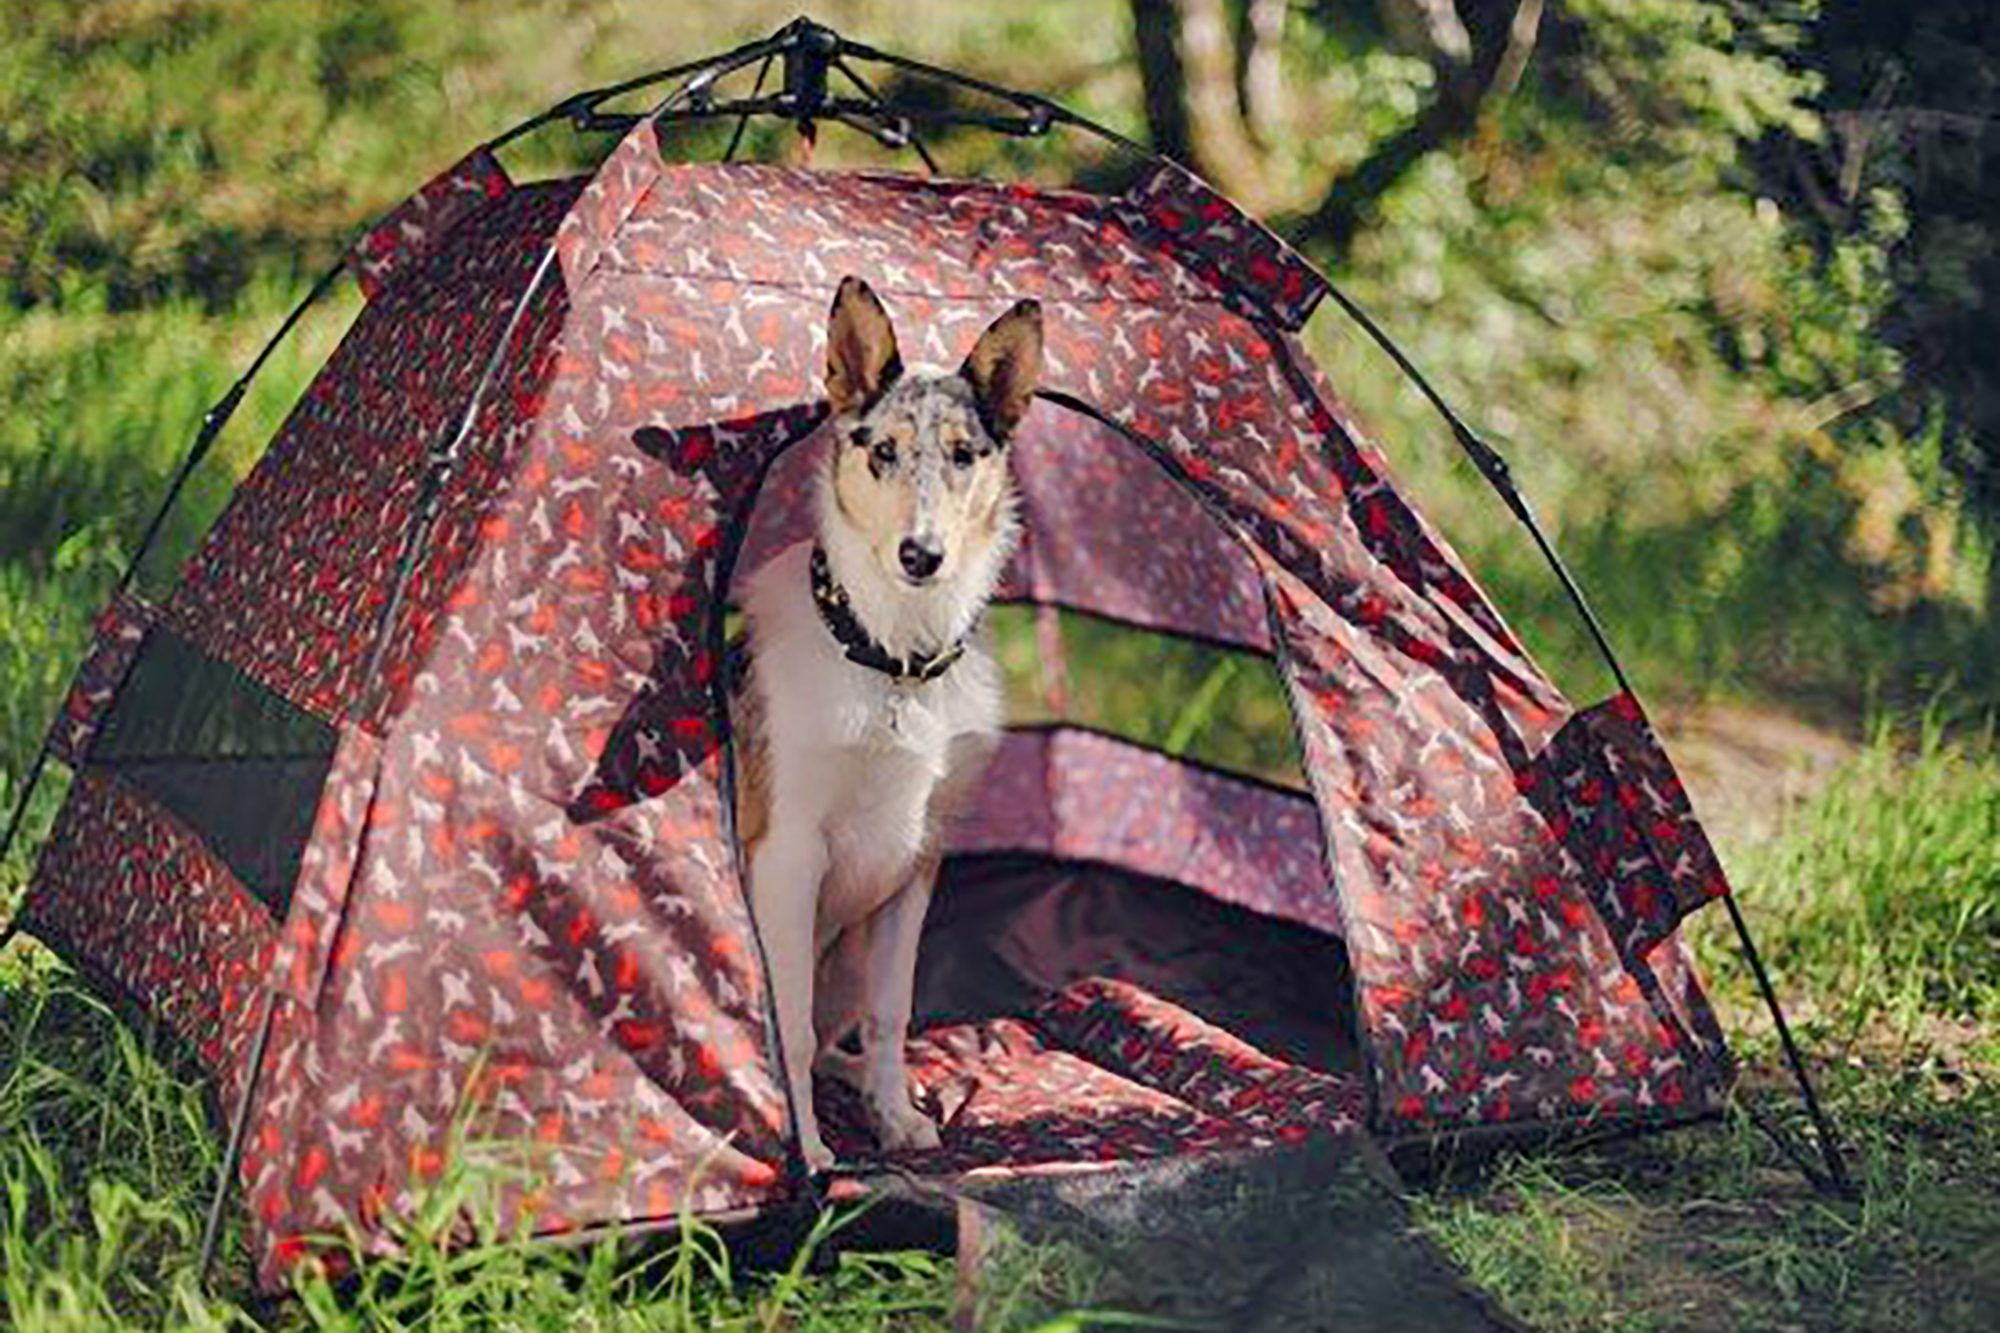 Tall dog stands inside dog tent with red dog pattern